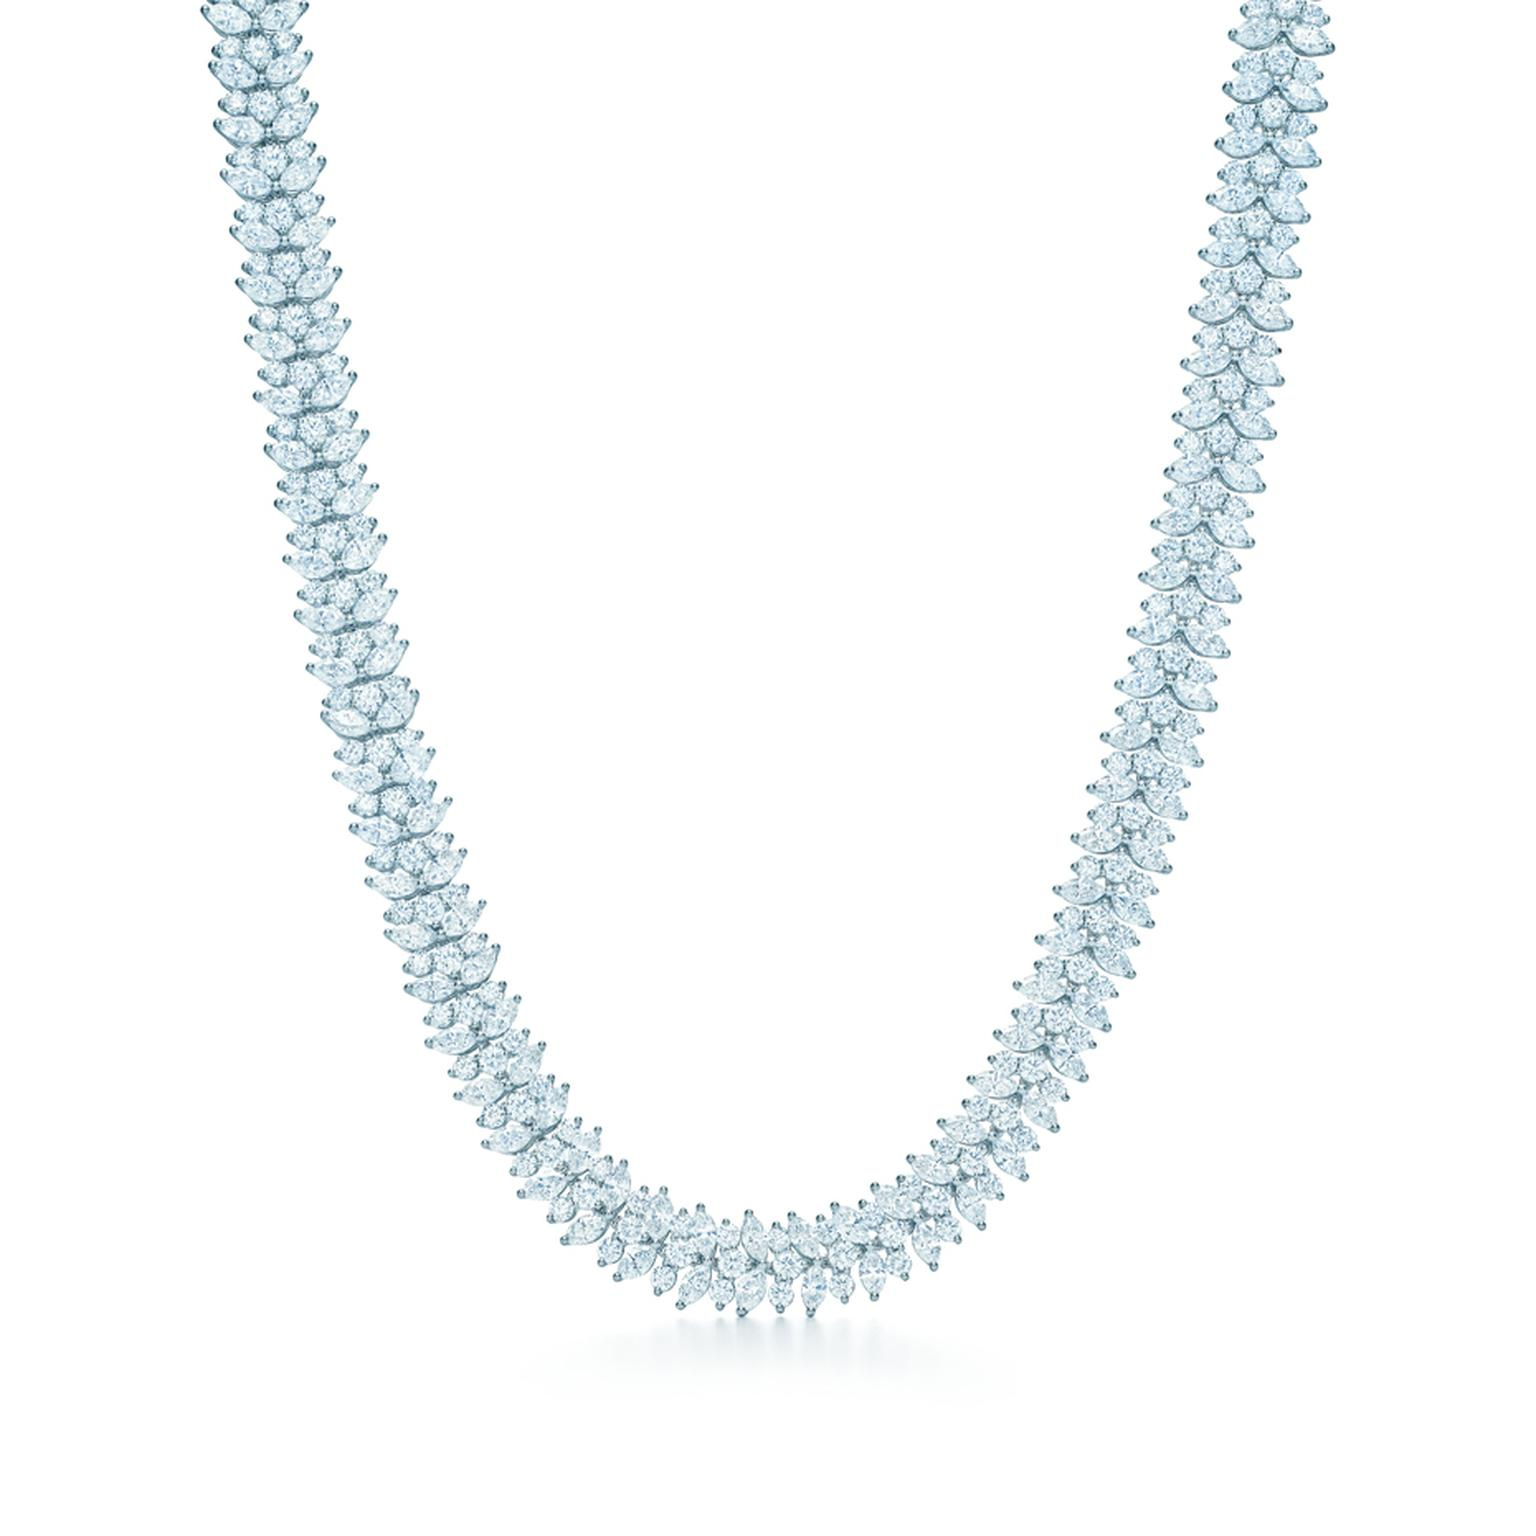 The Tiffany & Co. diamond cluster necklace worn by Jessica Biel to the 86th Academy Awards